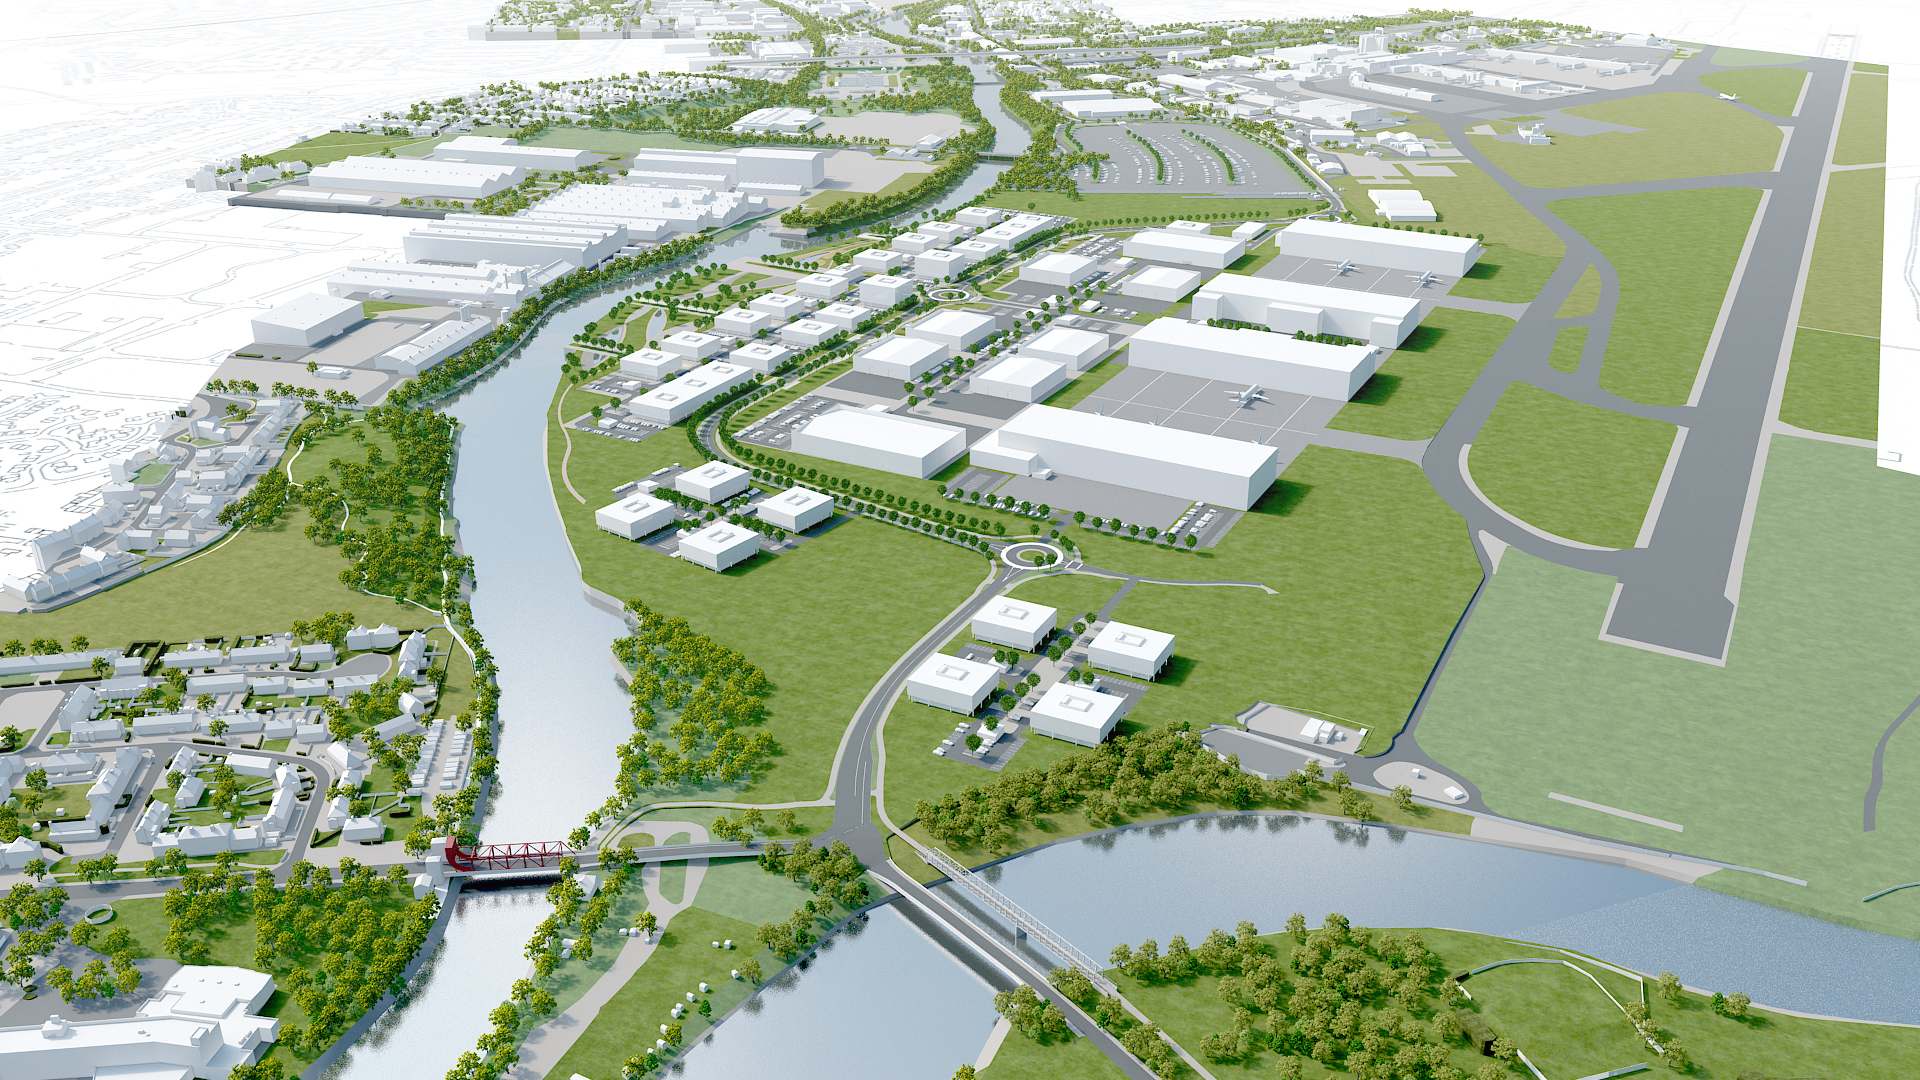 Artist impression aerial view of the Advanced Manufacturing Innovation District Scotland